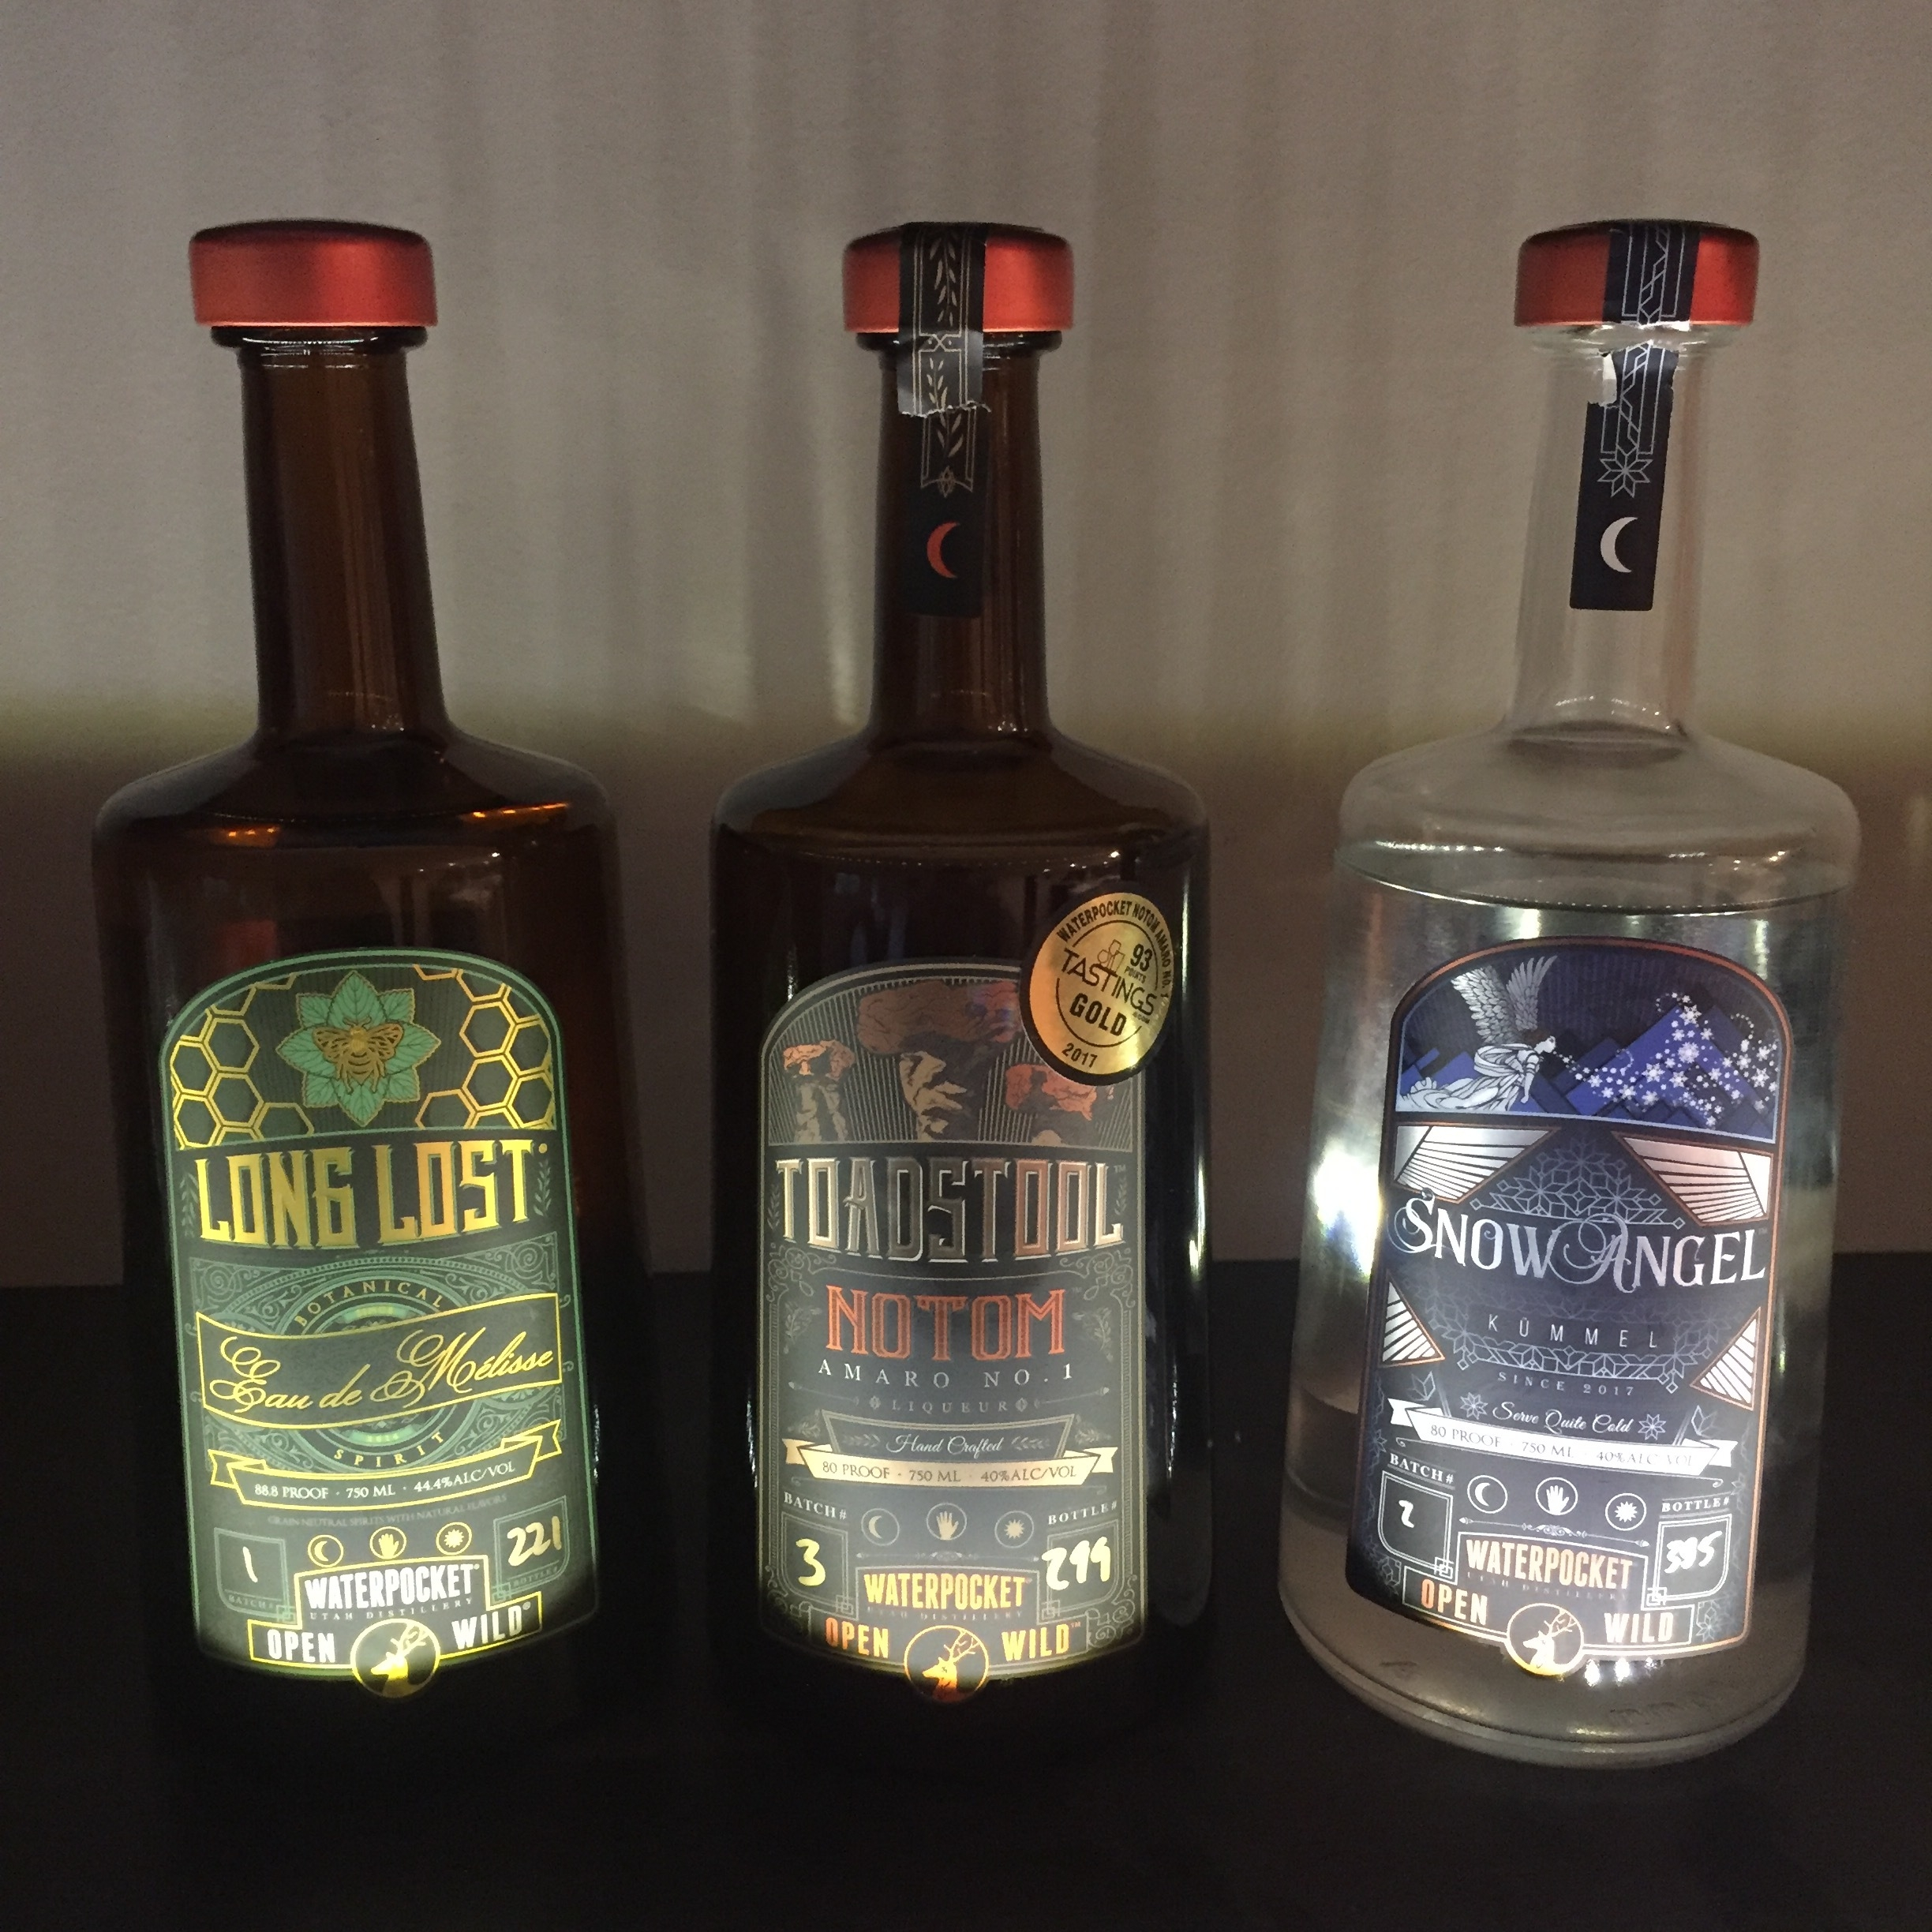 Several Waterpocket spirits have found a home in the Utah Grape and Grain collection...